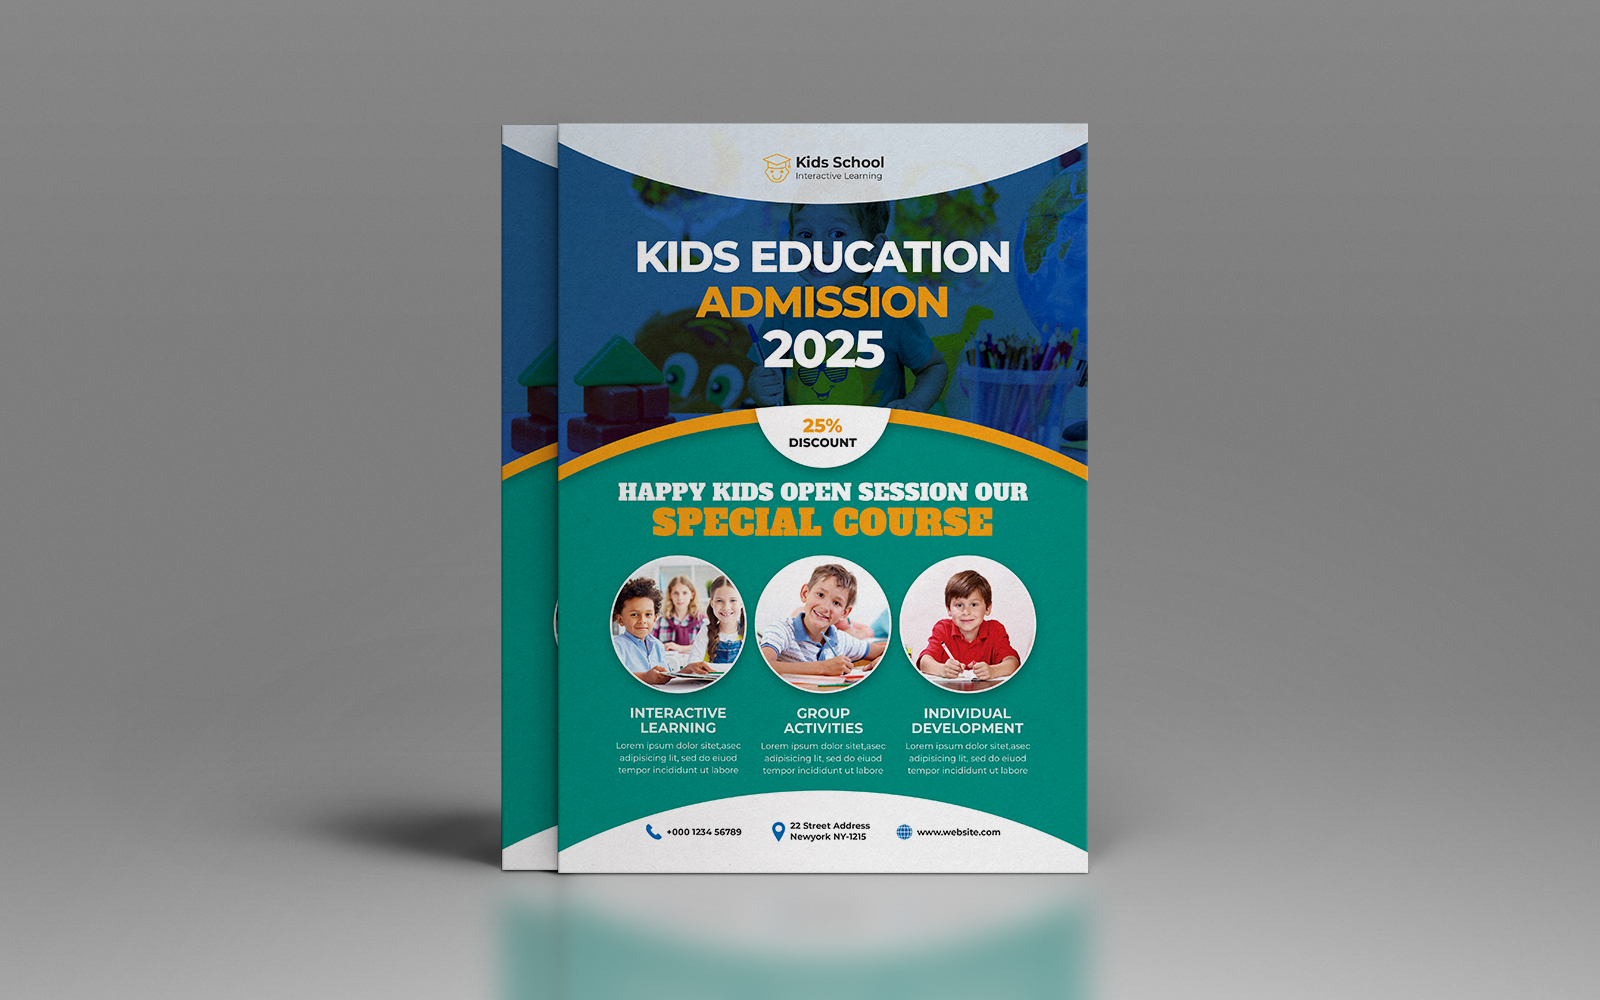 School Education Admission Flyer template